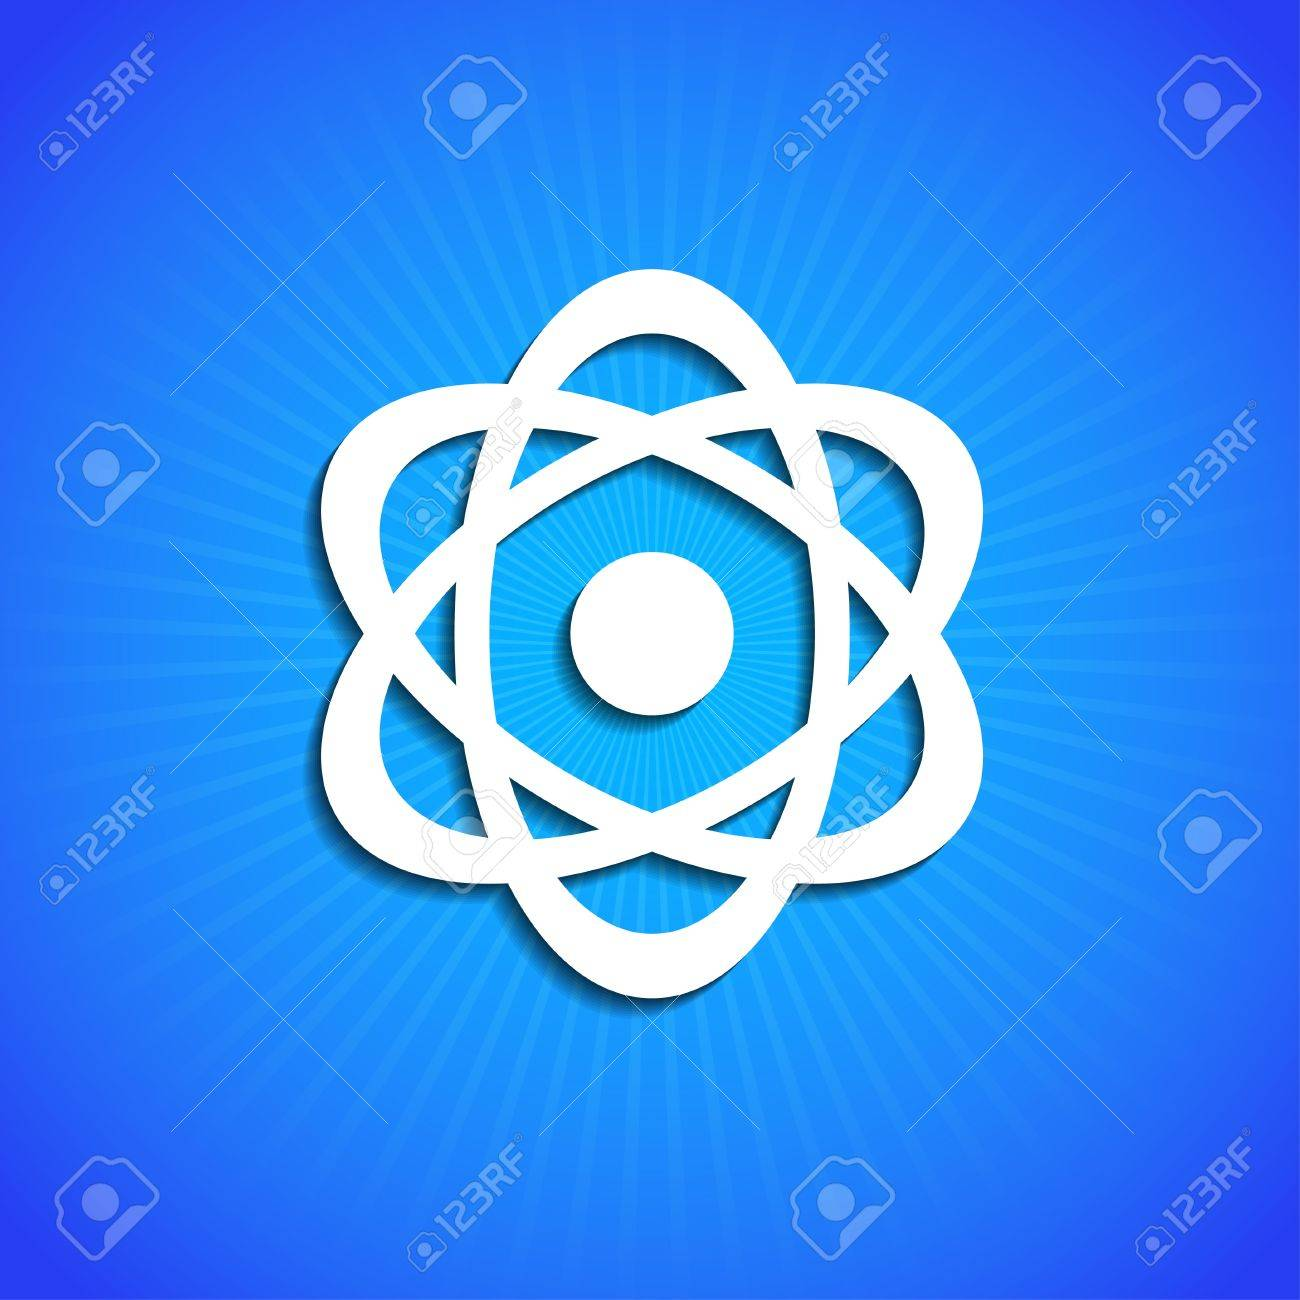 icon on blue background. Stock Vector - 17681745